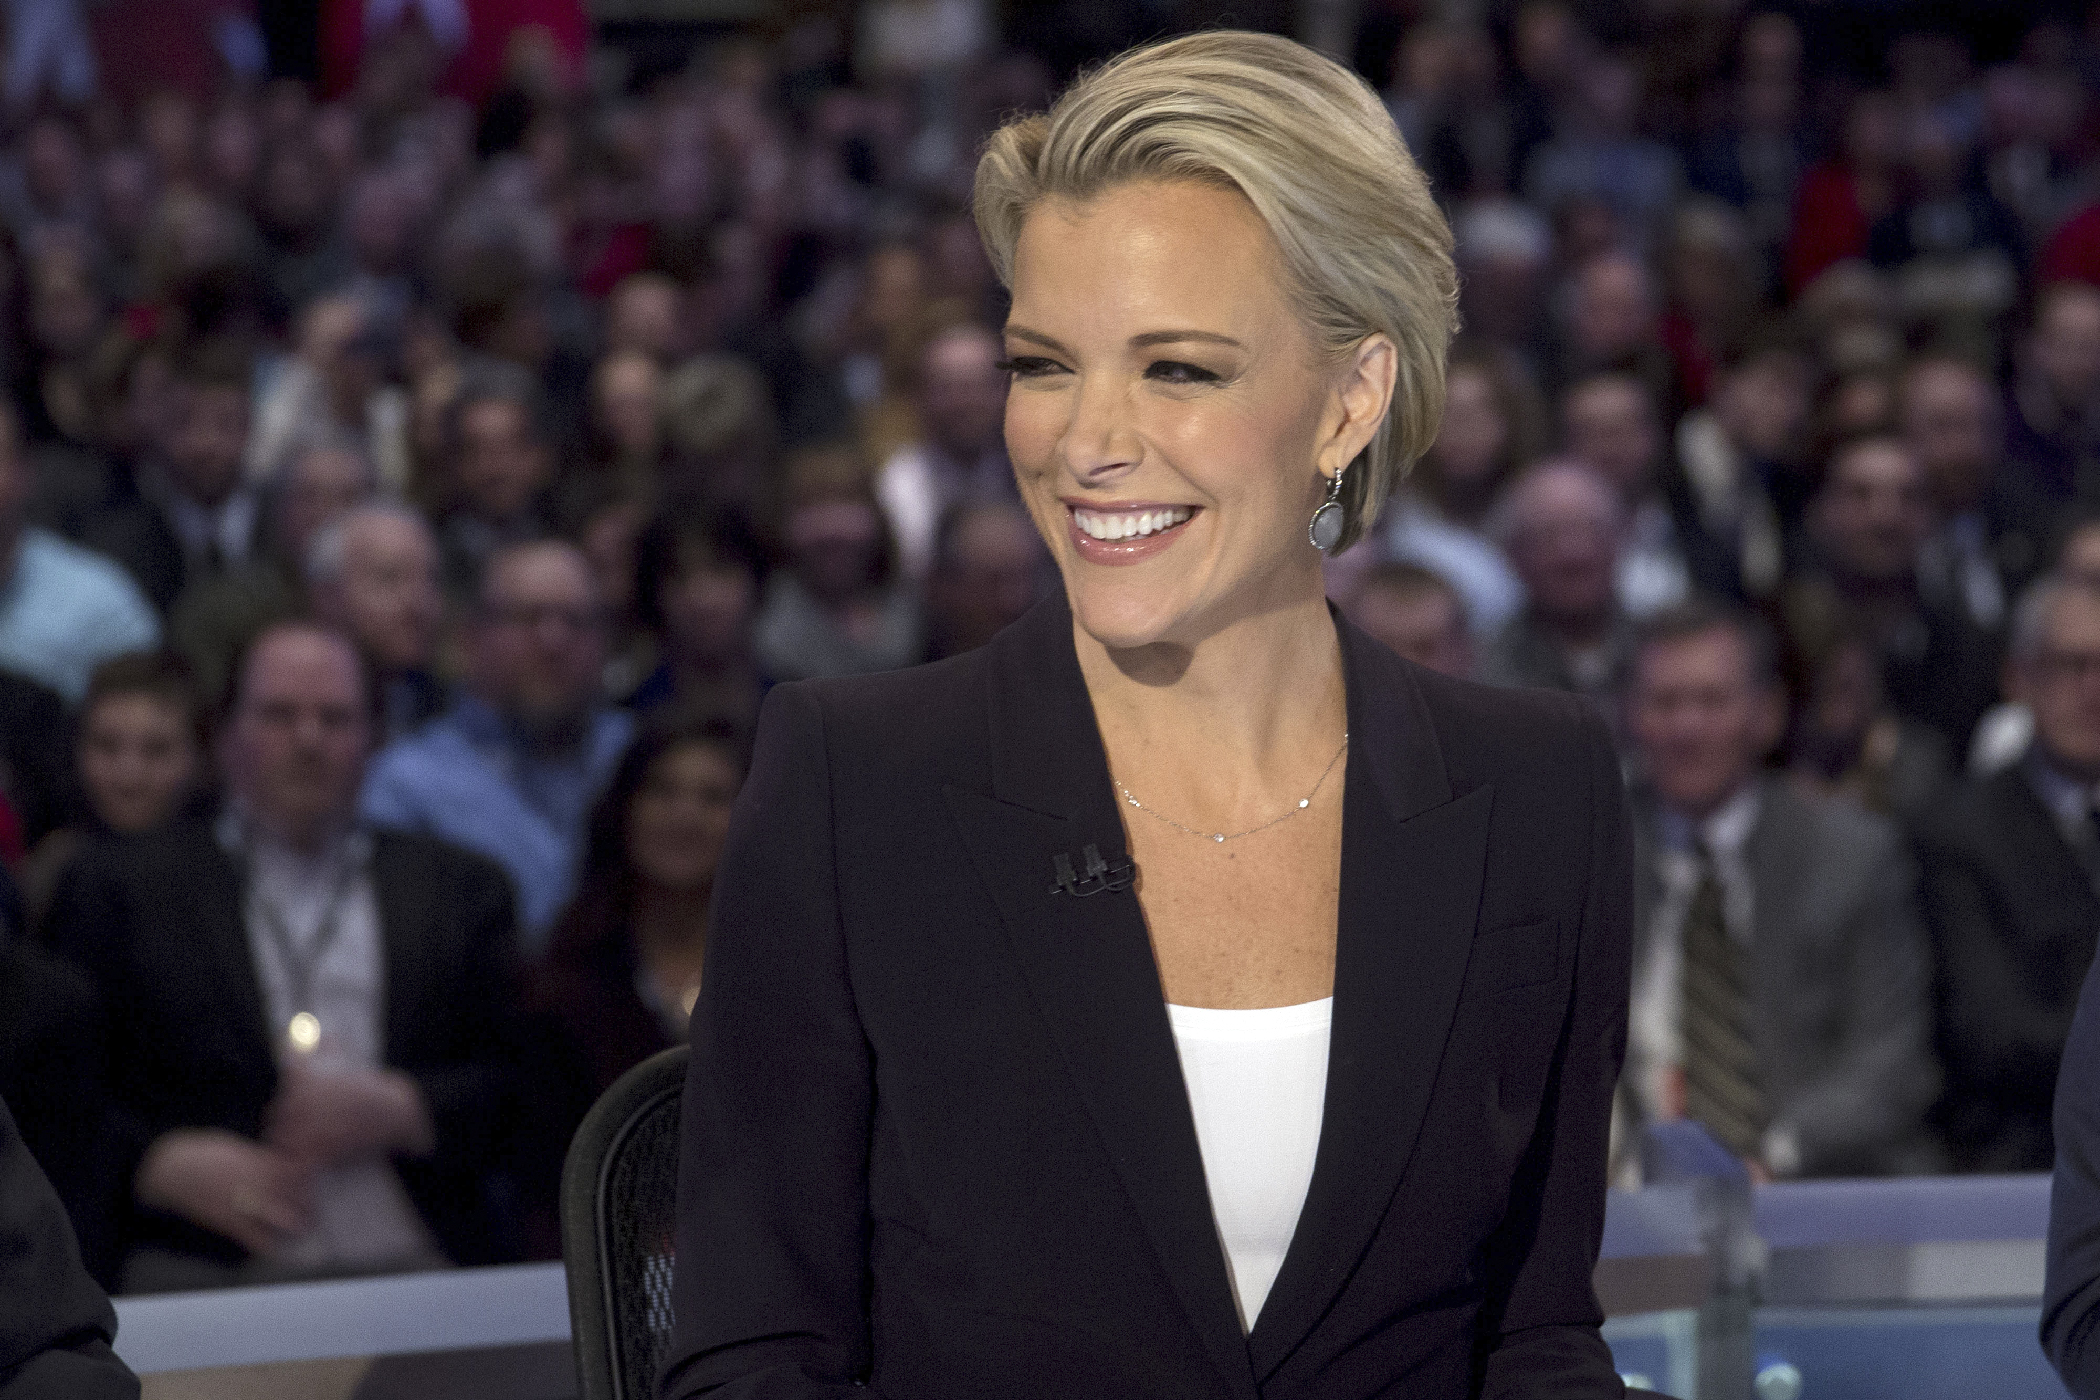 Fox News anchor Megyn Kelly smiles as she waits to begin the Republican presidential candidate debate at the Iowa Events Center in Des Moines, Iowa, U.S., on Thursday, Jan. 28, 2016. Candidates from both parties are crisscrossing Iowa, an agricultural state of about 3 million people in the U.S. heartland that will hold the first votes of the 2016 election on Feb. 1.